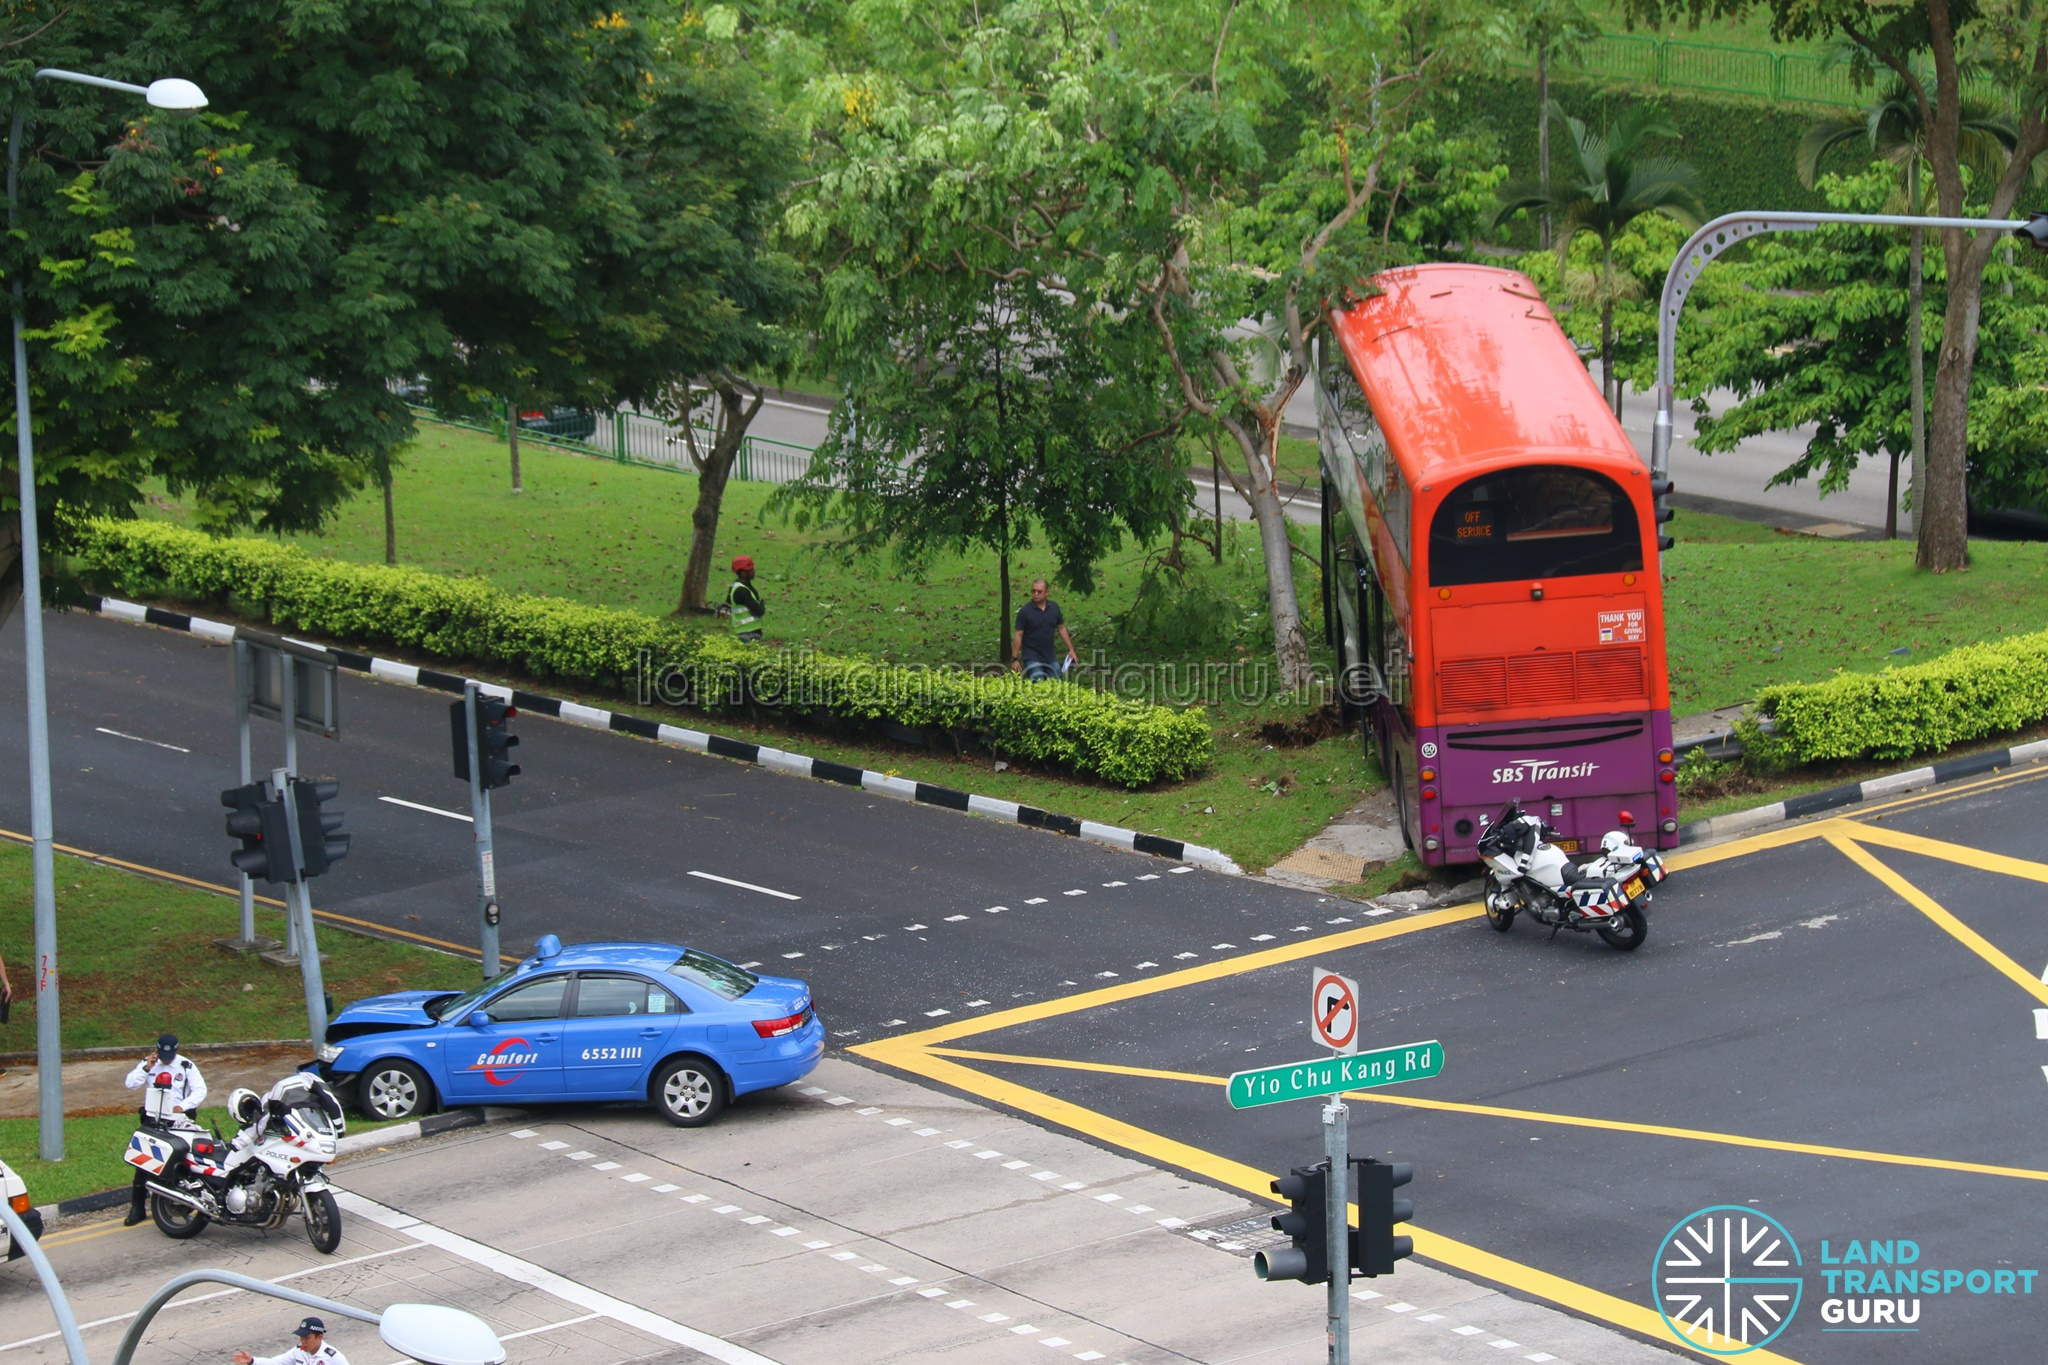 Bus Accident along Ang Mo Kio Avenue 3 on 28 May 2017 | Land